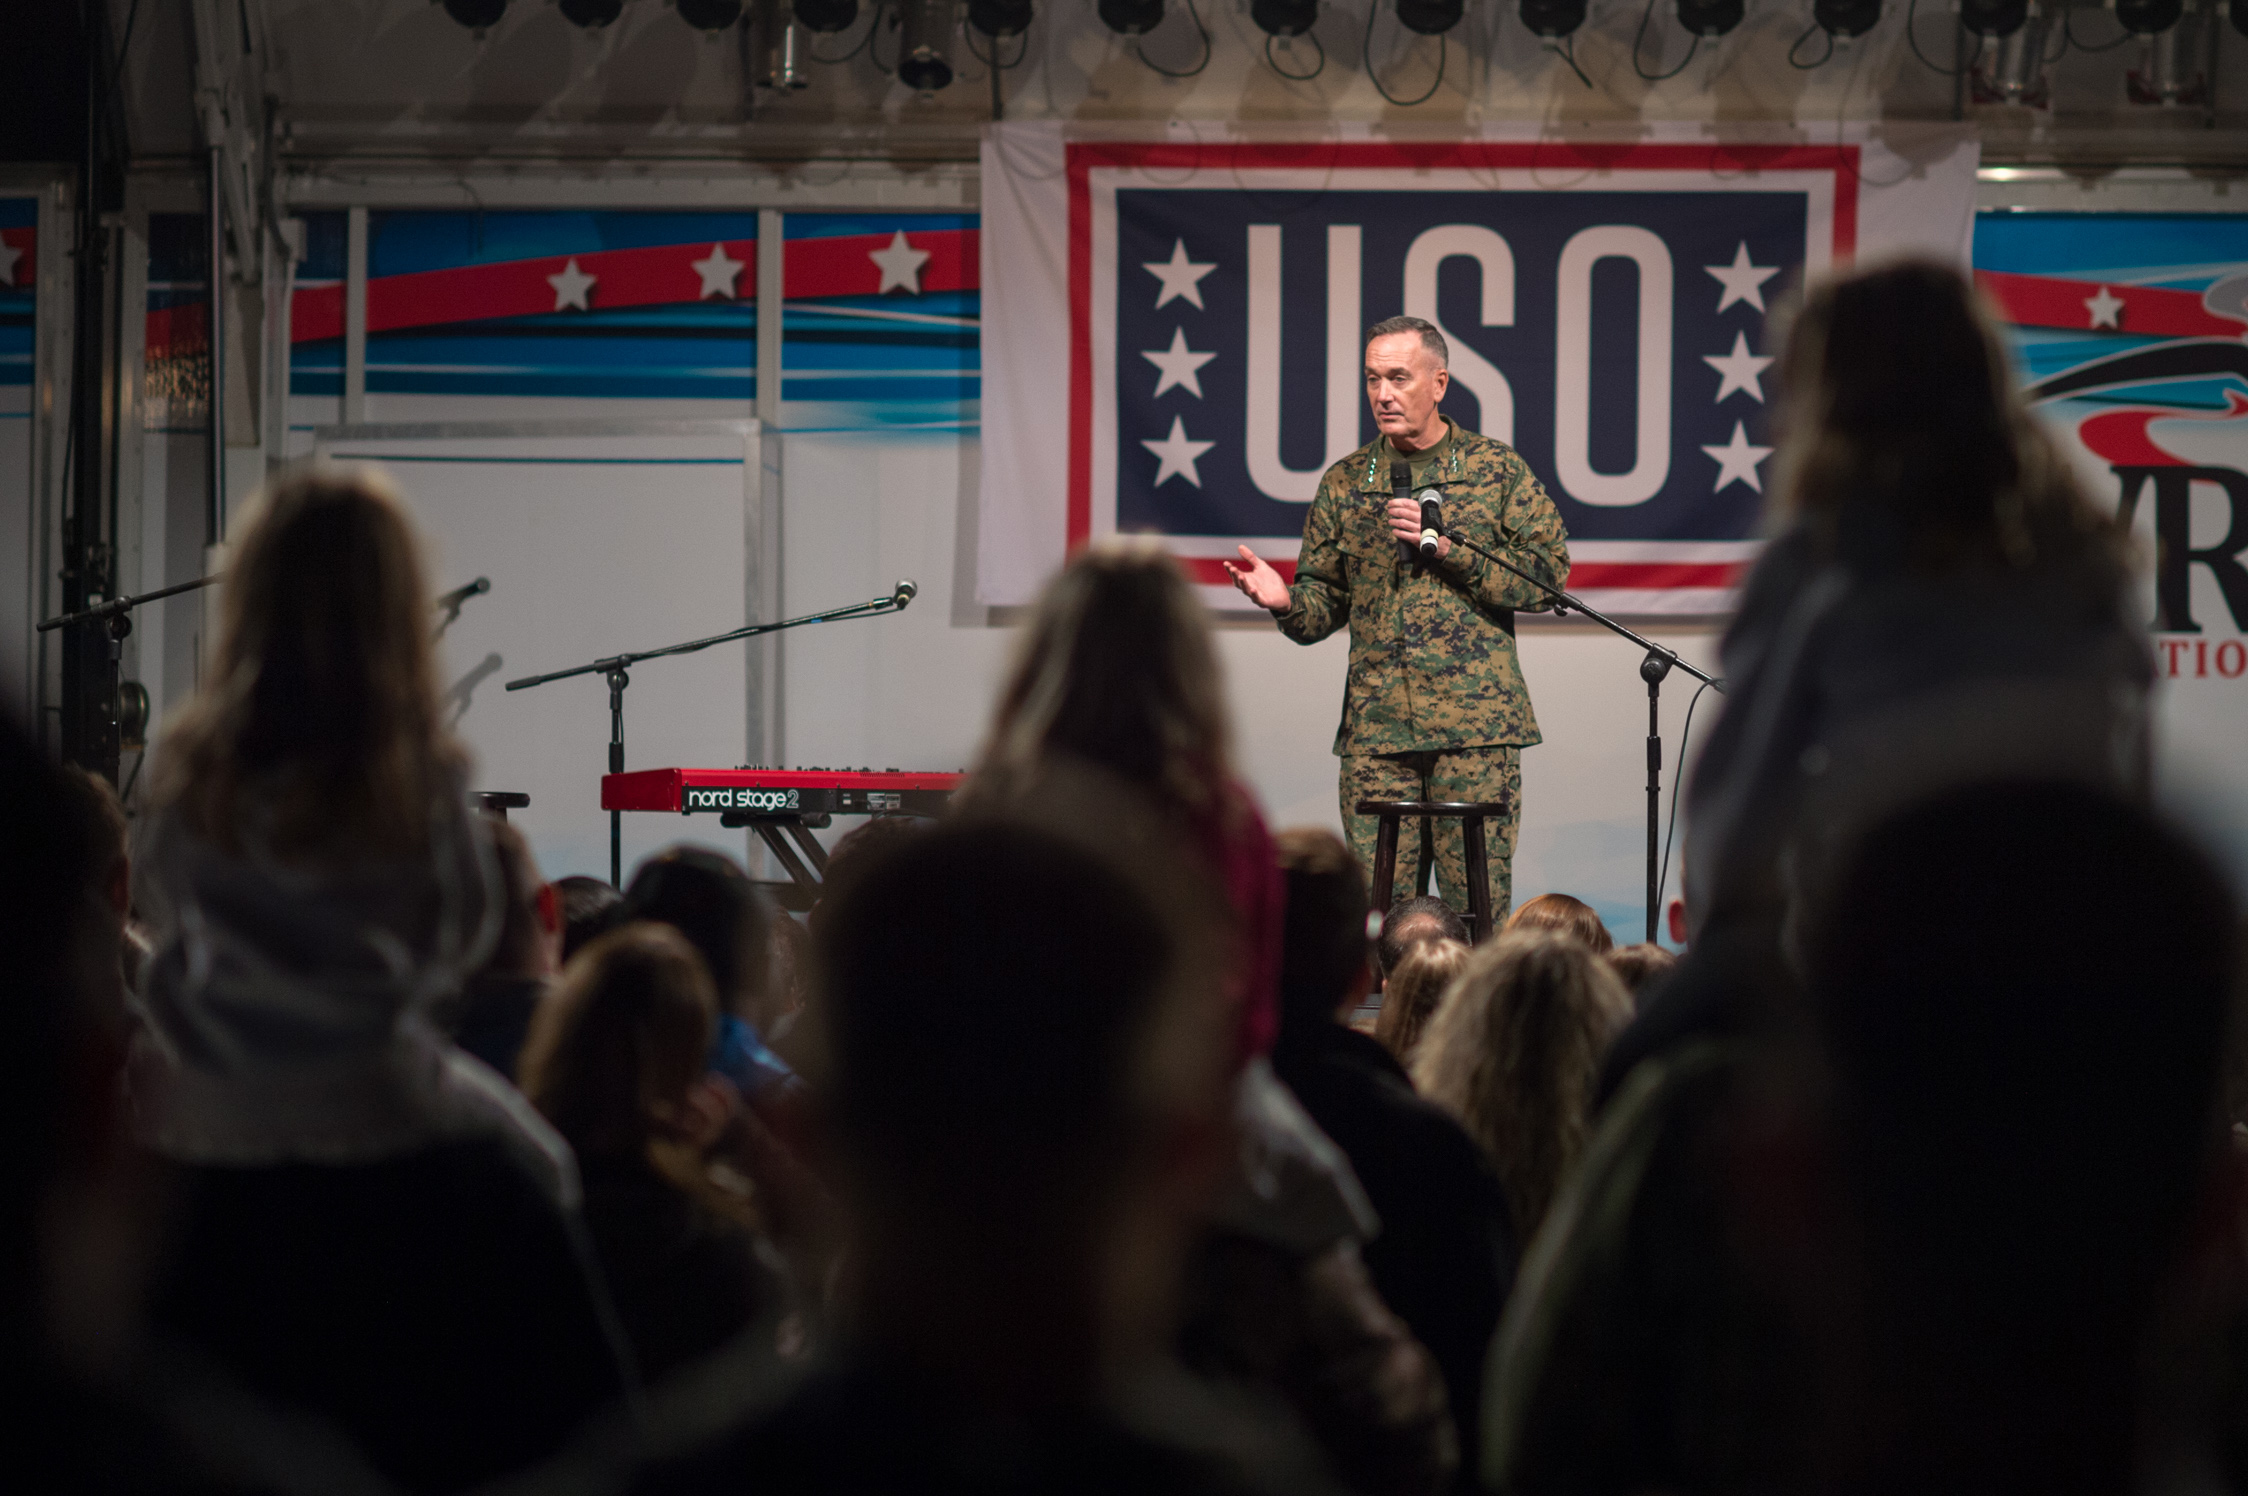 U.S. Marine Corps Gen. Joseph F. Dunford Jr., chairman of the Joint Chiefs of Staff, talks with U.S. service members and their families